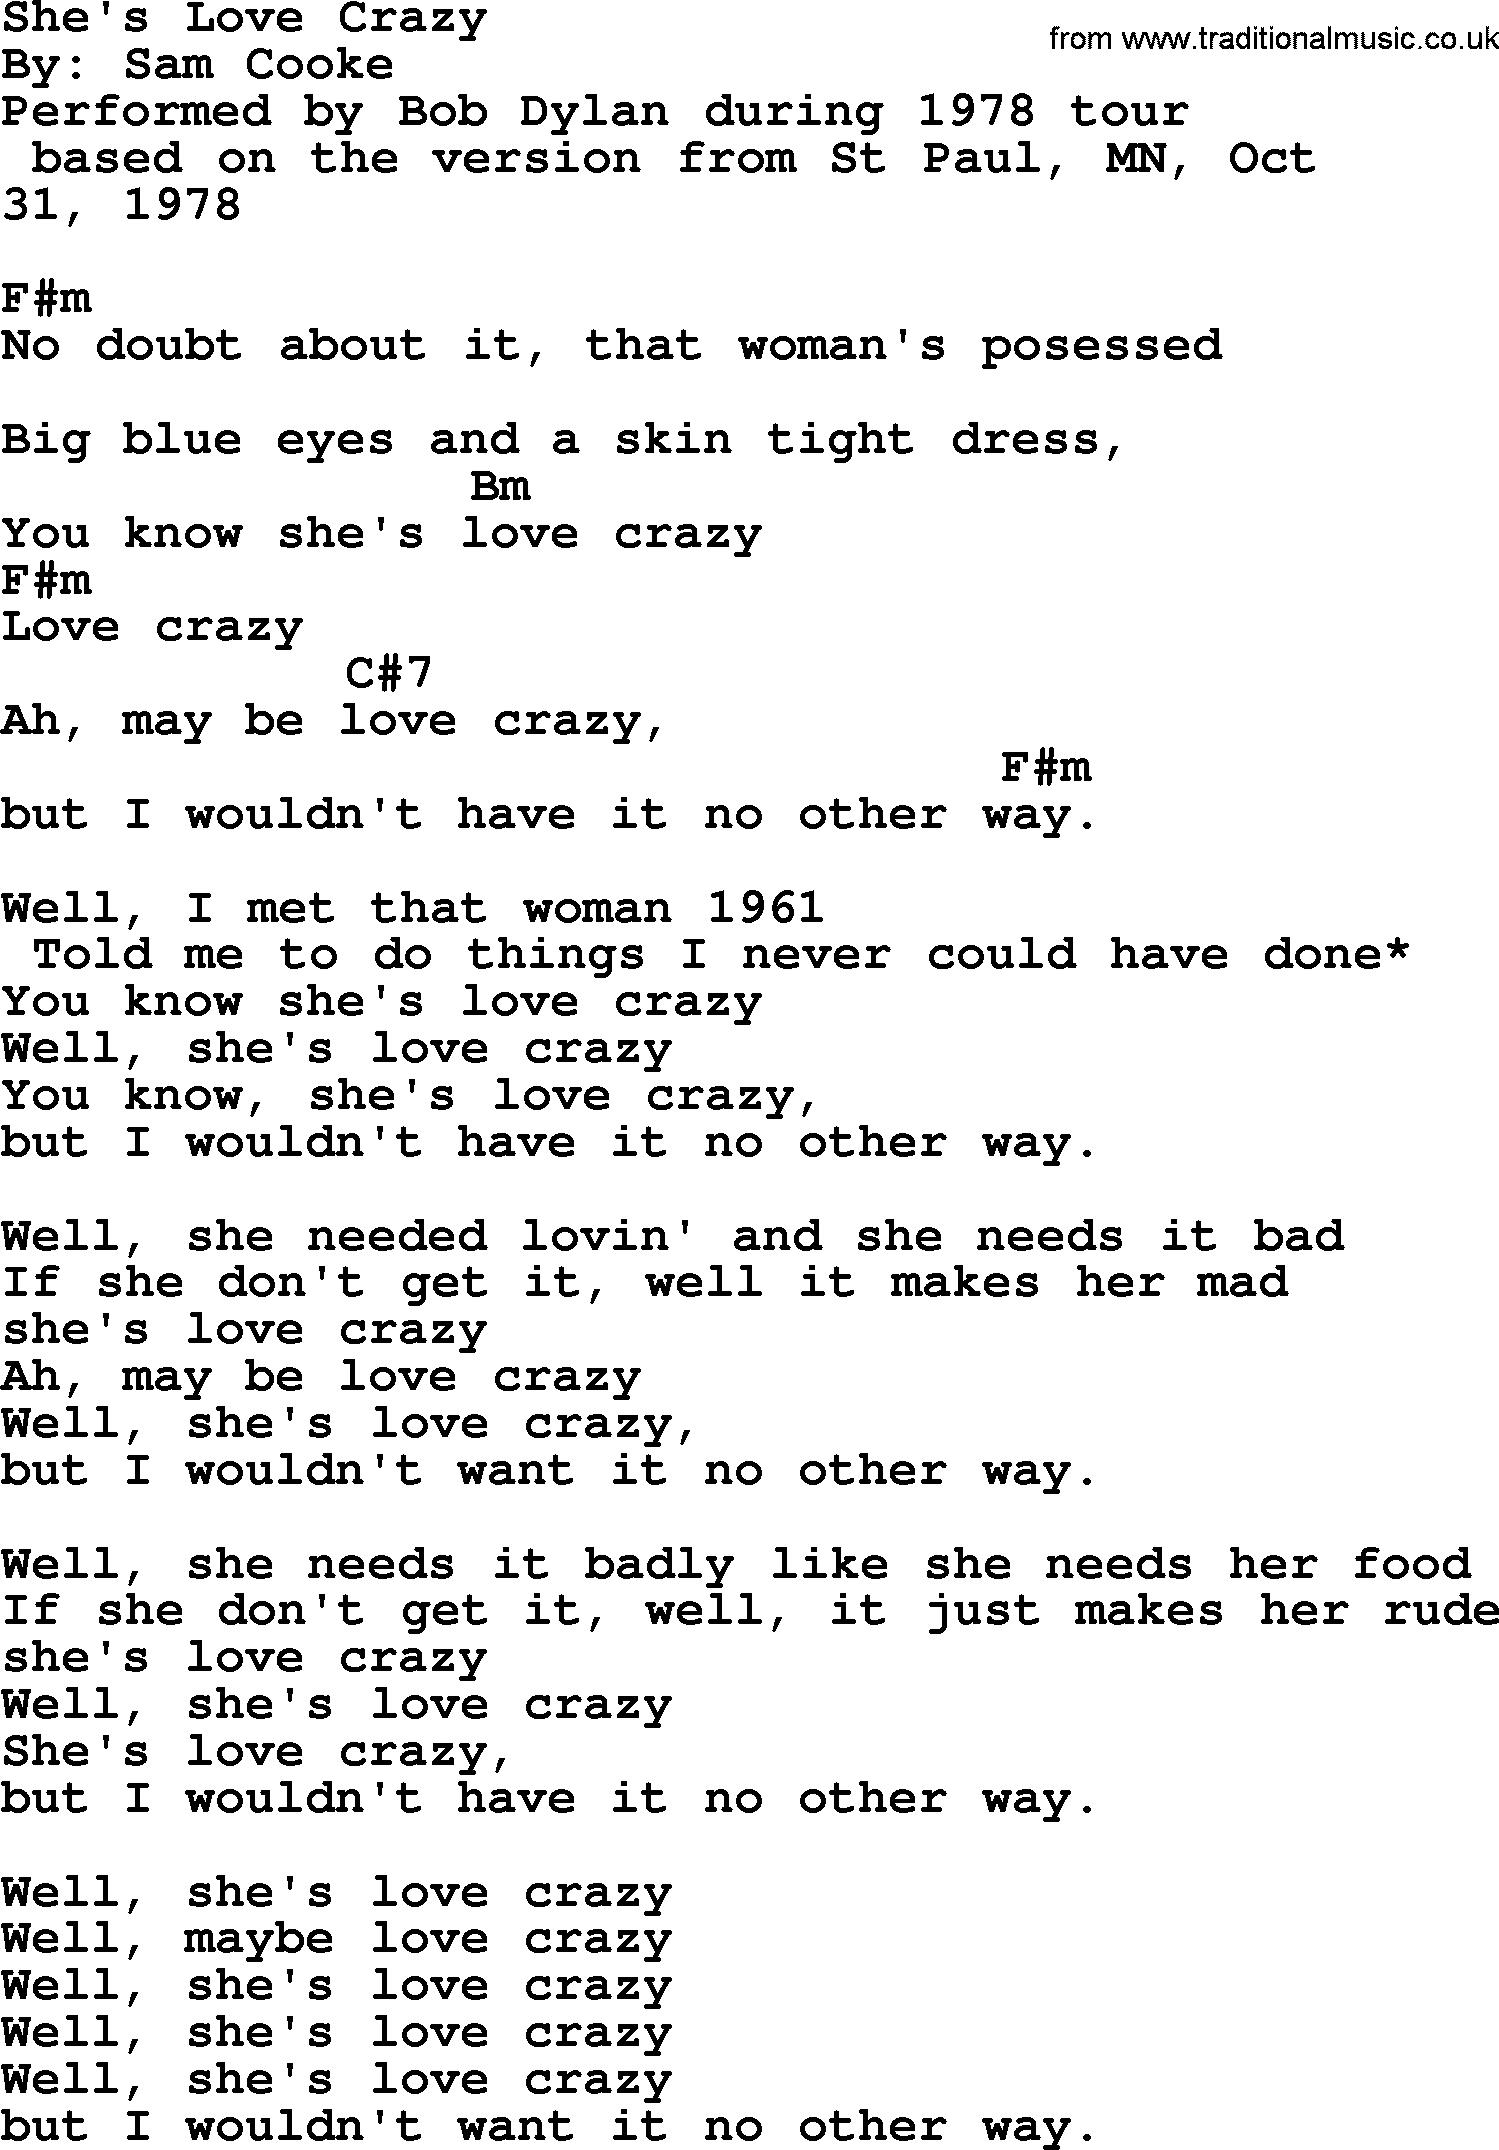 Bob dylan song shes love crazy lyrics and chords bob dylan song lyrics with chords shes love crazy hexwebz Choice Image